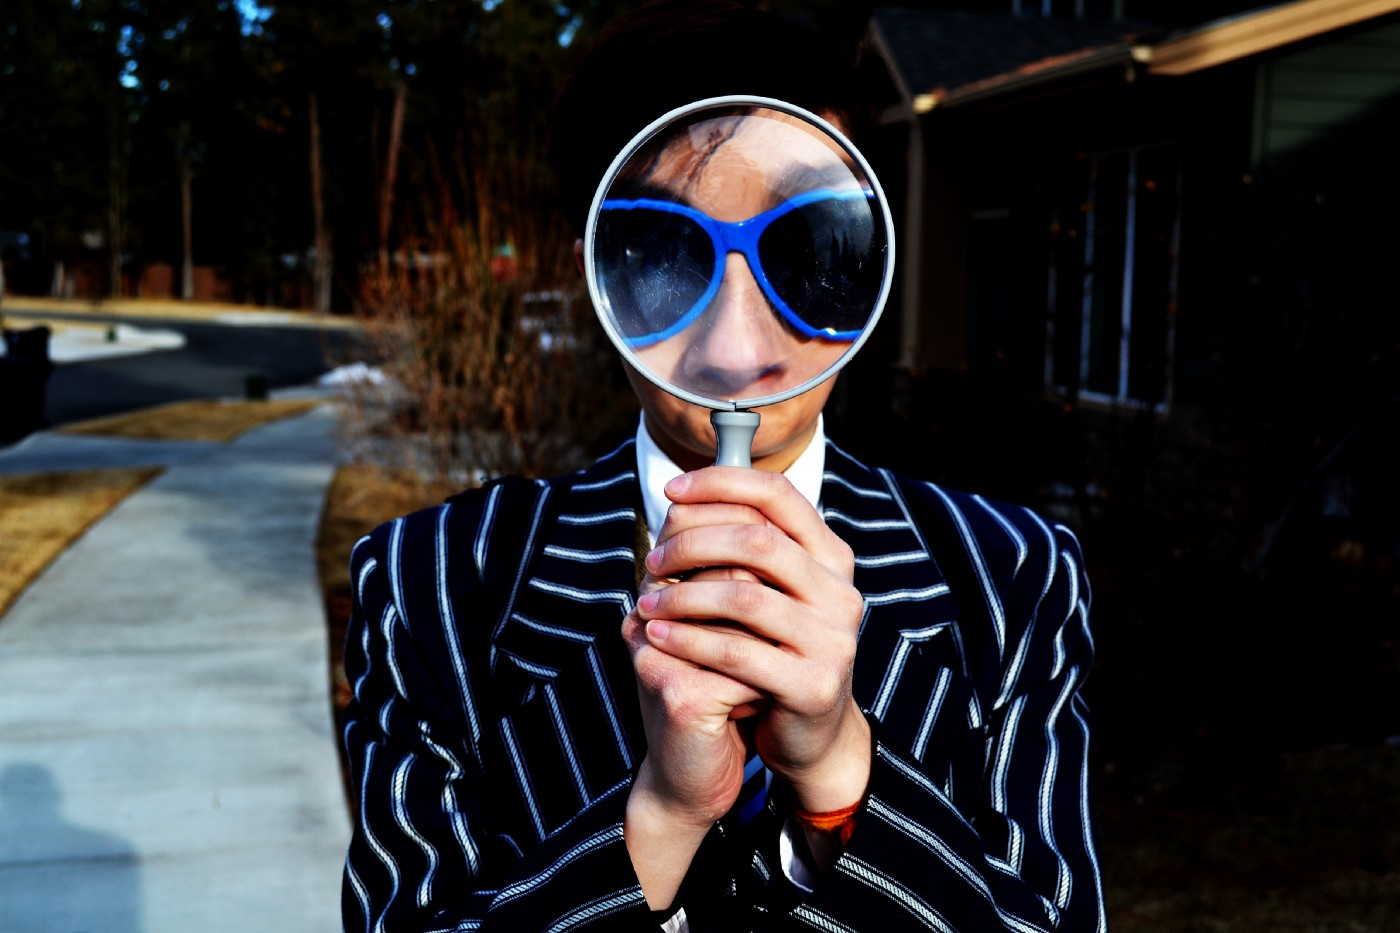 a person with a magnifying glass on their face